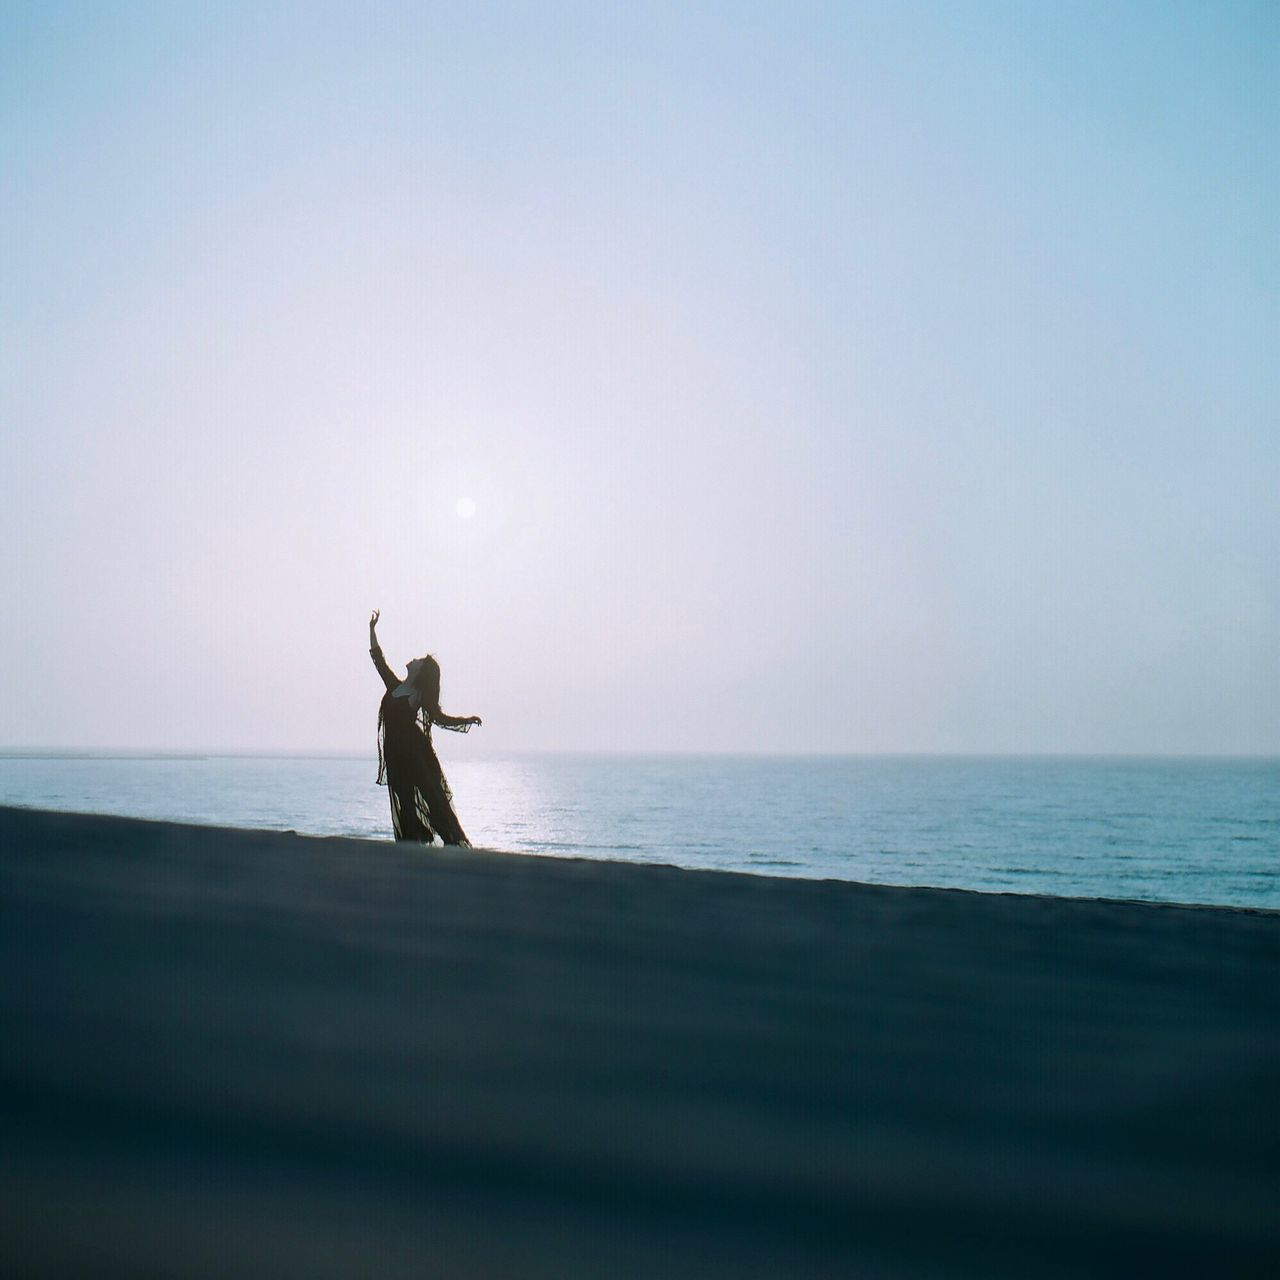 sea, water, horizon over water, beauty in nature, nature, scenics, lifestyles, leisure activity, tranquil scene, sky, real people, silhouette, one person, outdoors, sunset, clear sky, beach, day, people